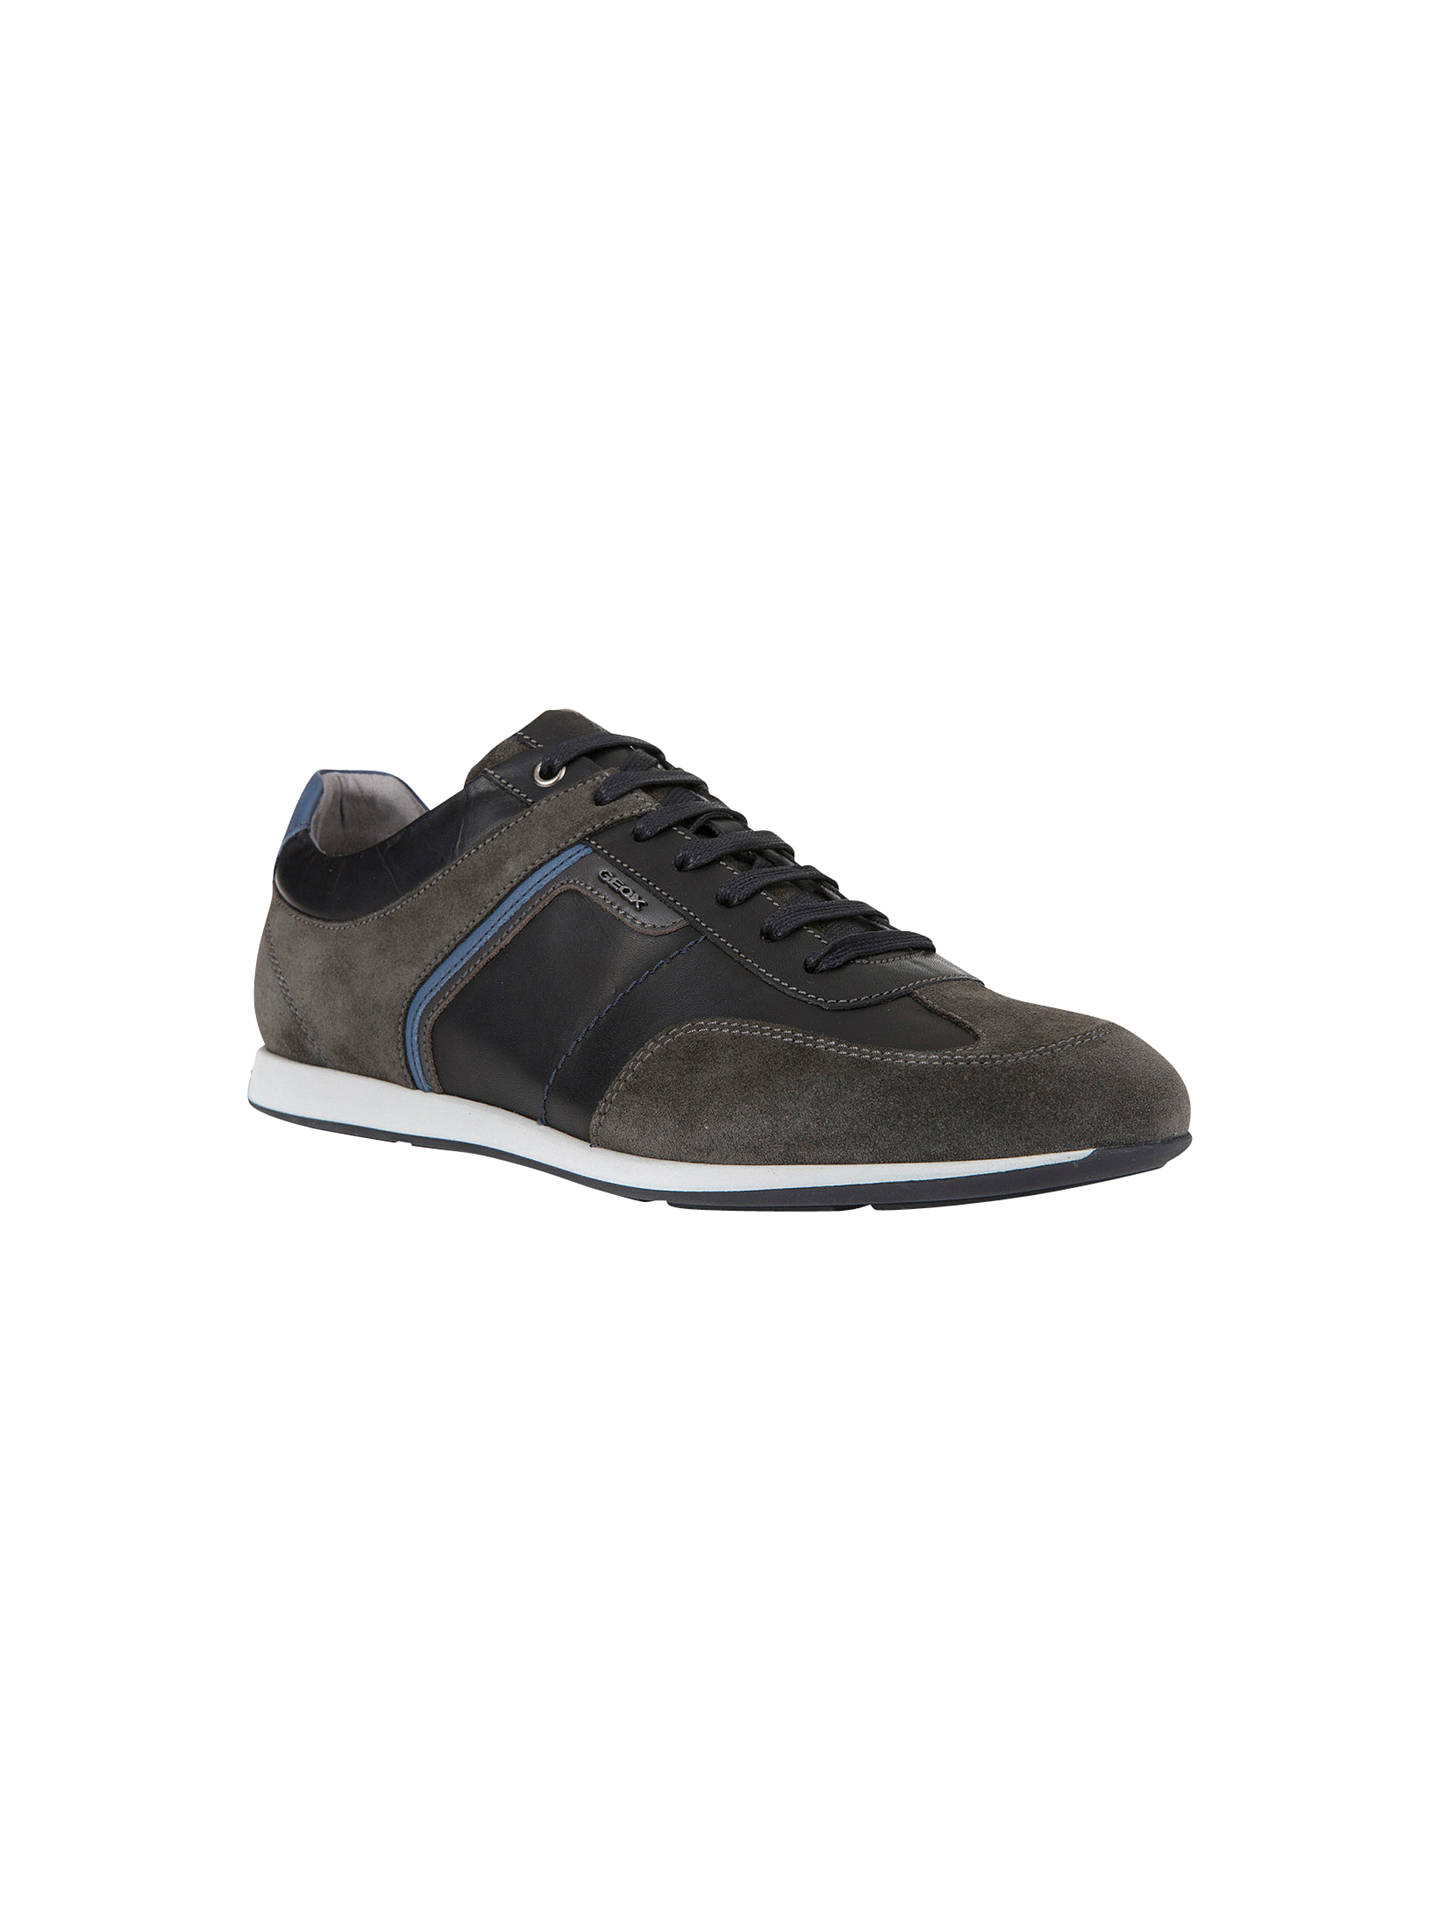 Geox Clemet Trainers | Black at John Lewis & Partners